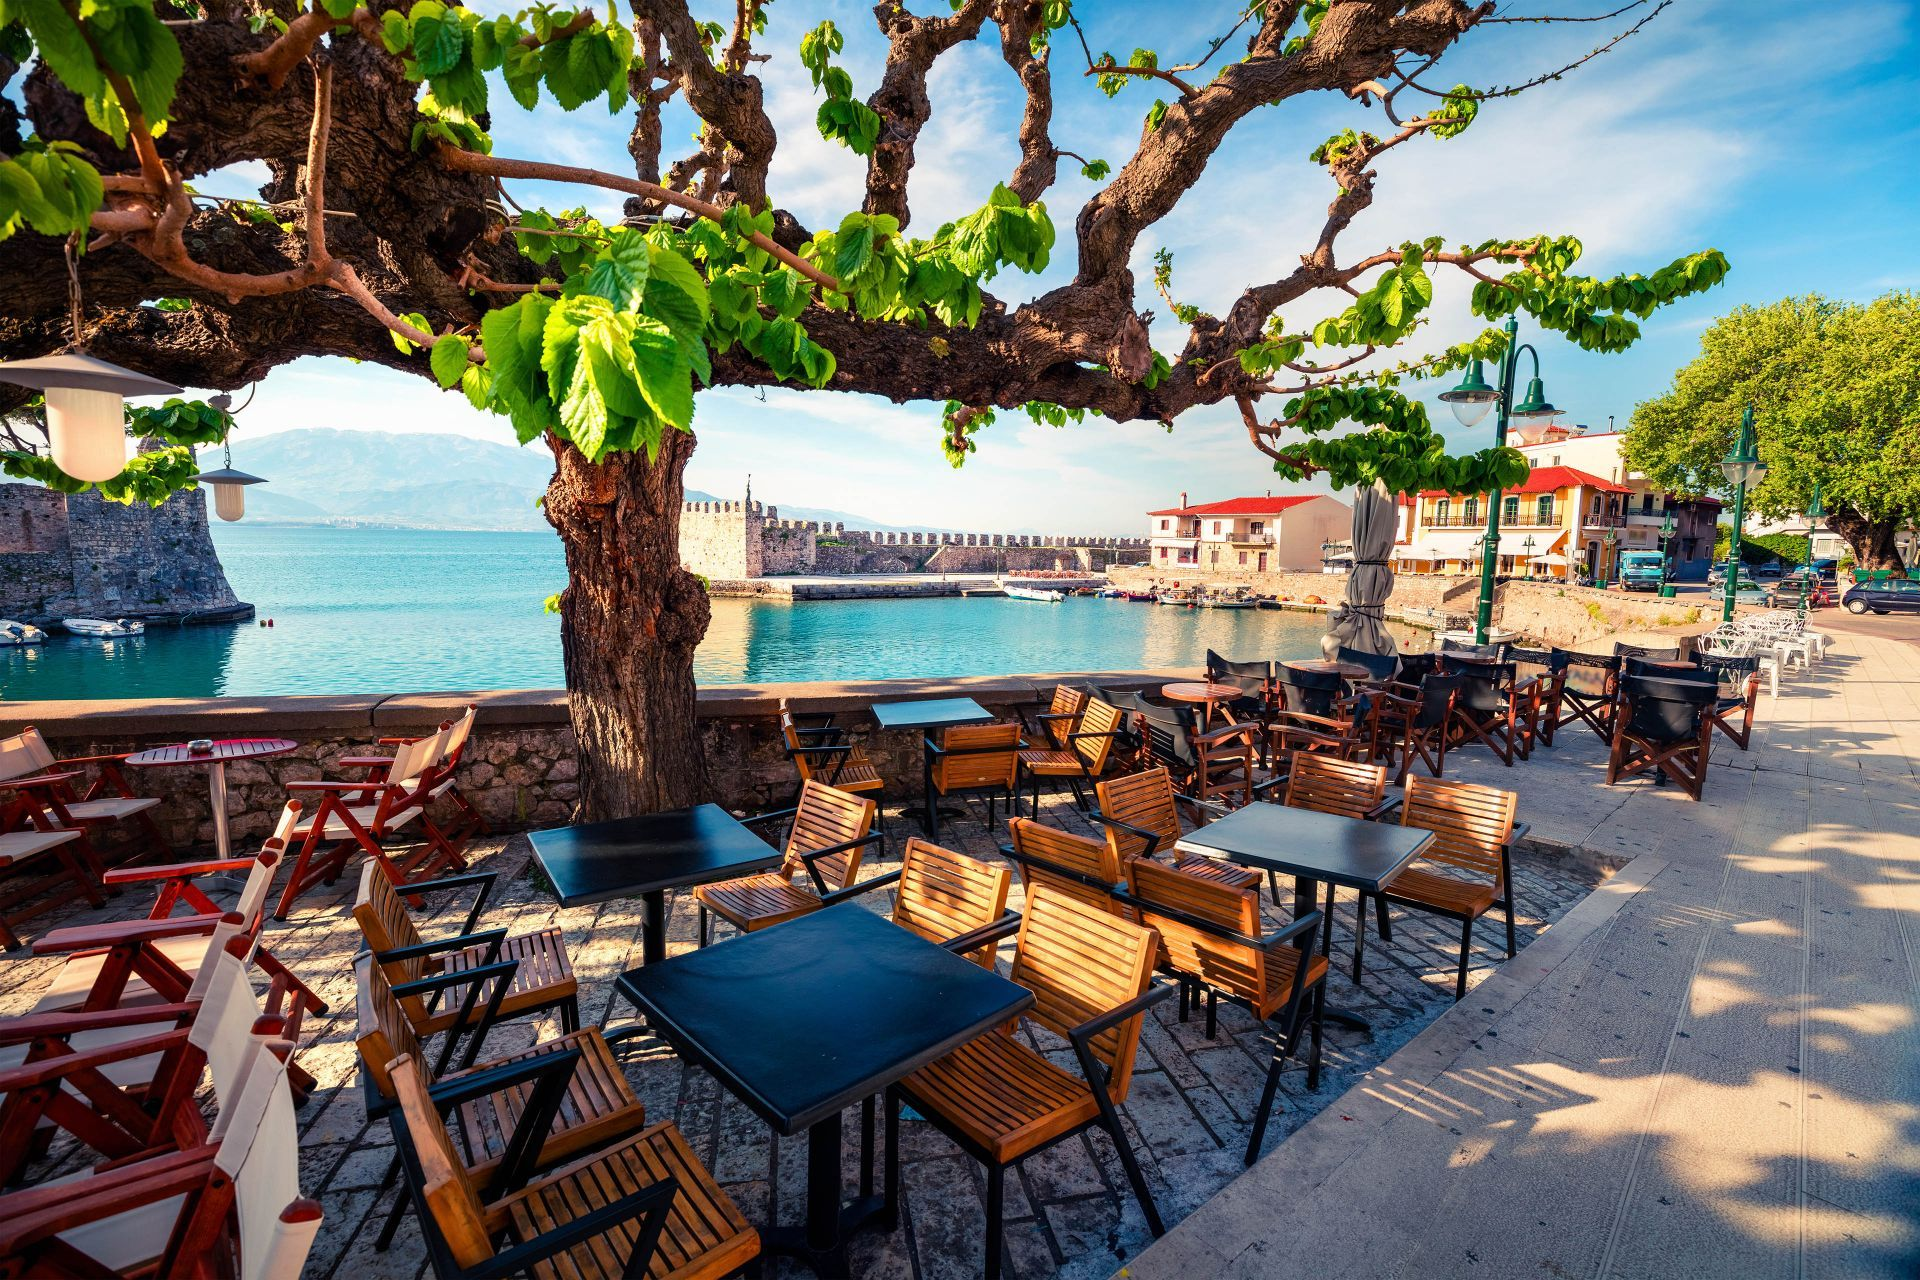 Places to eat and drink in Nafpaktos